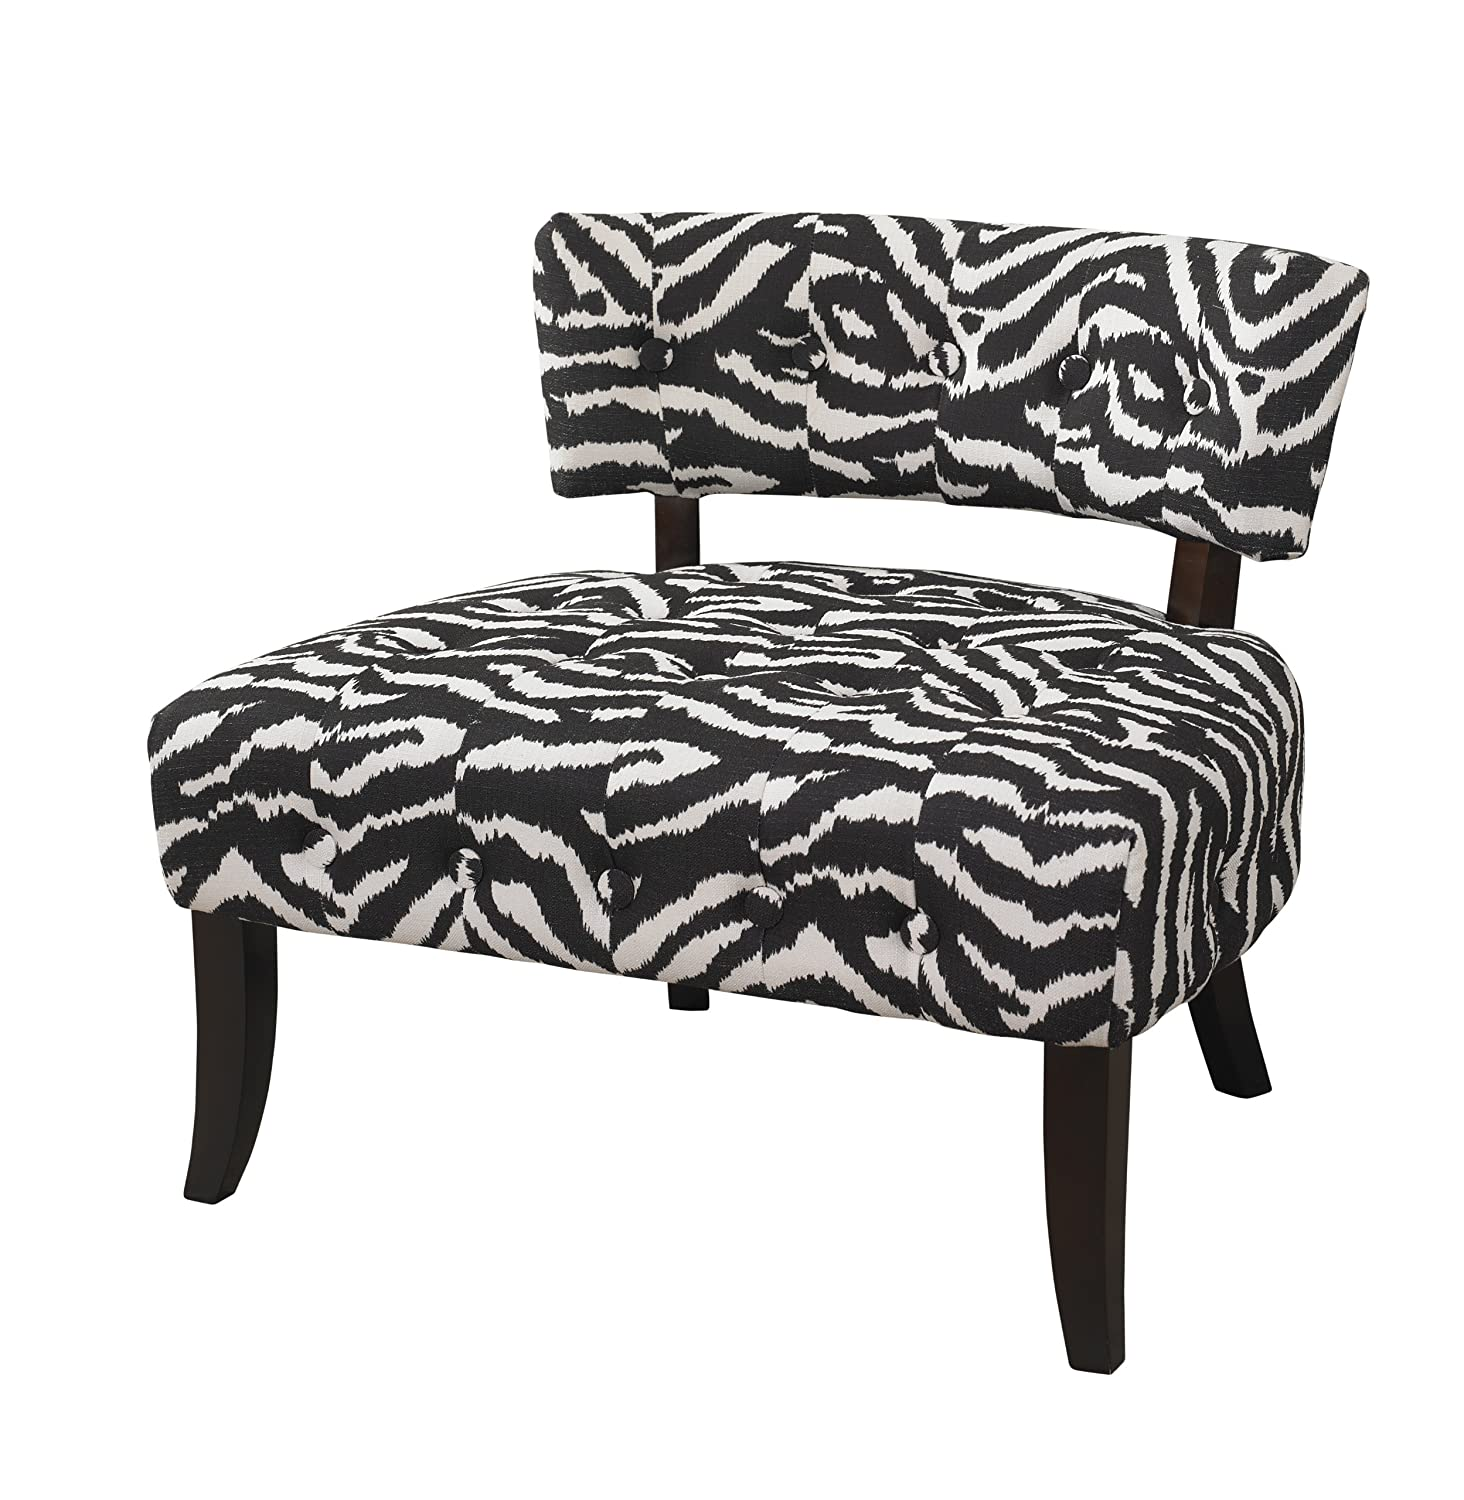 cheetah print bean bag chair stool for sale 404 squidoo page not found